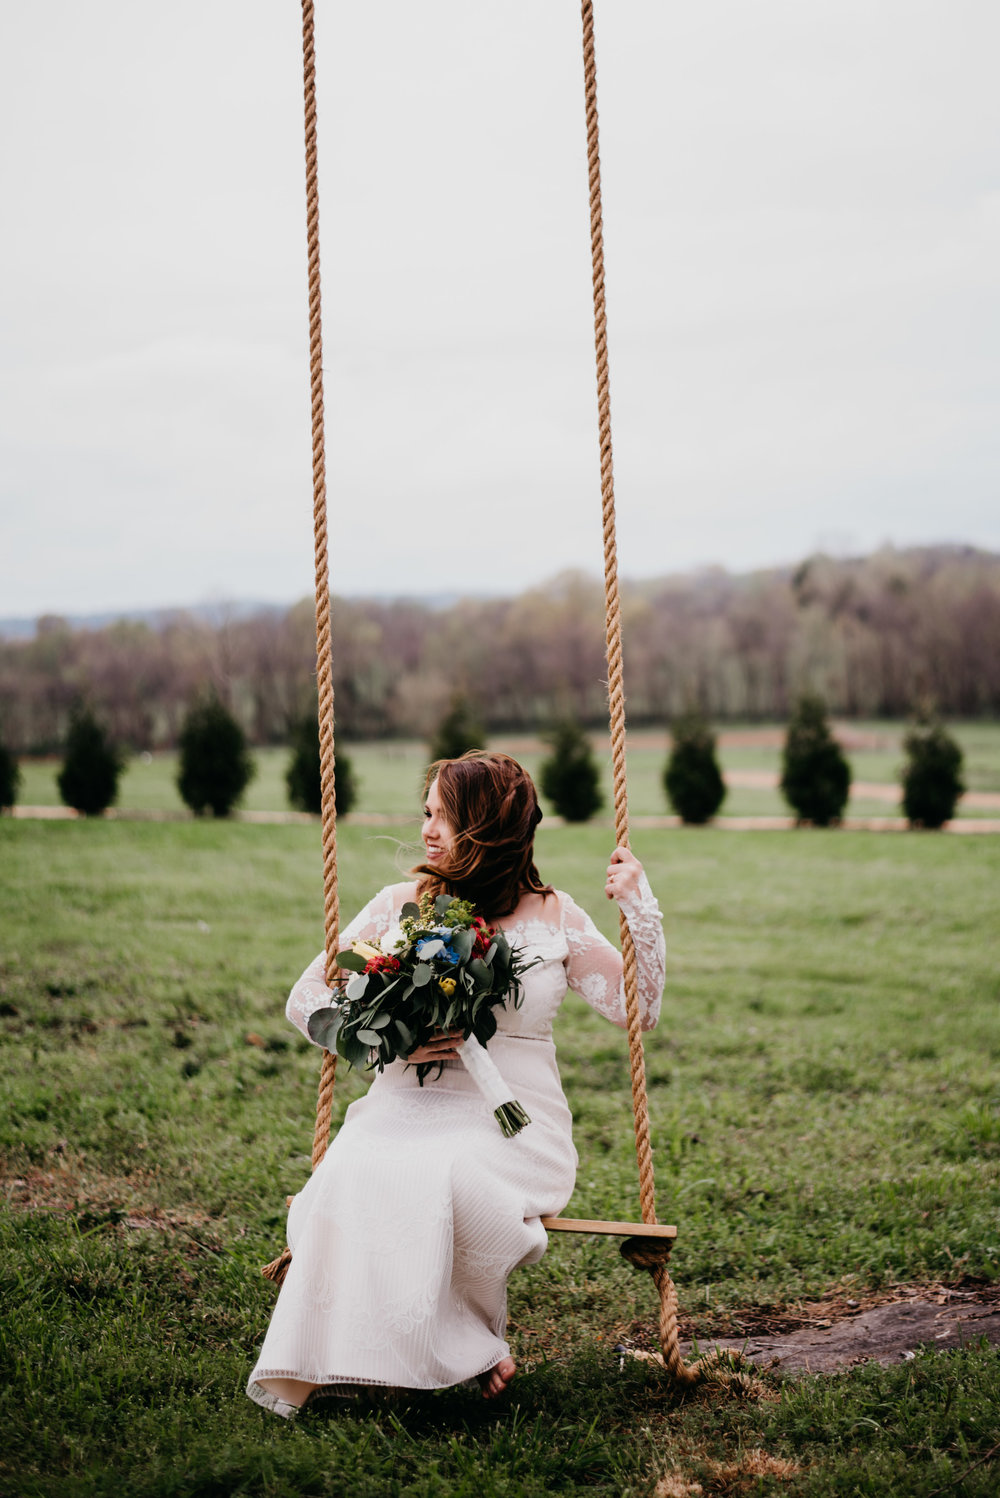 Allenbrooke-Farms-Nashville-Wedding-Photographers 44.jpg